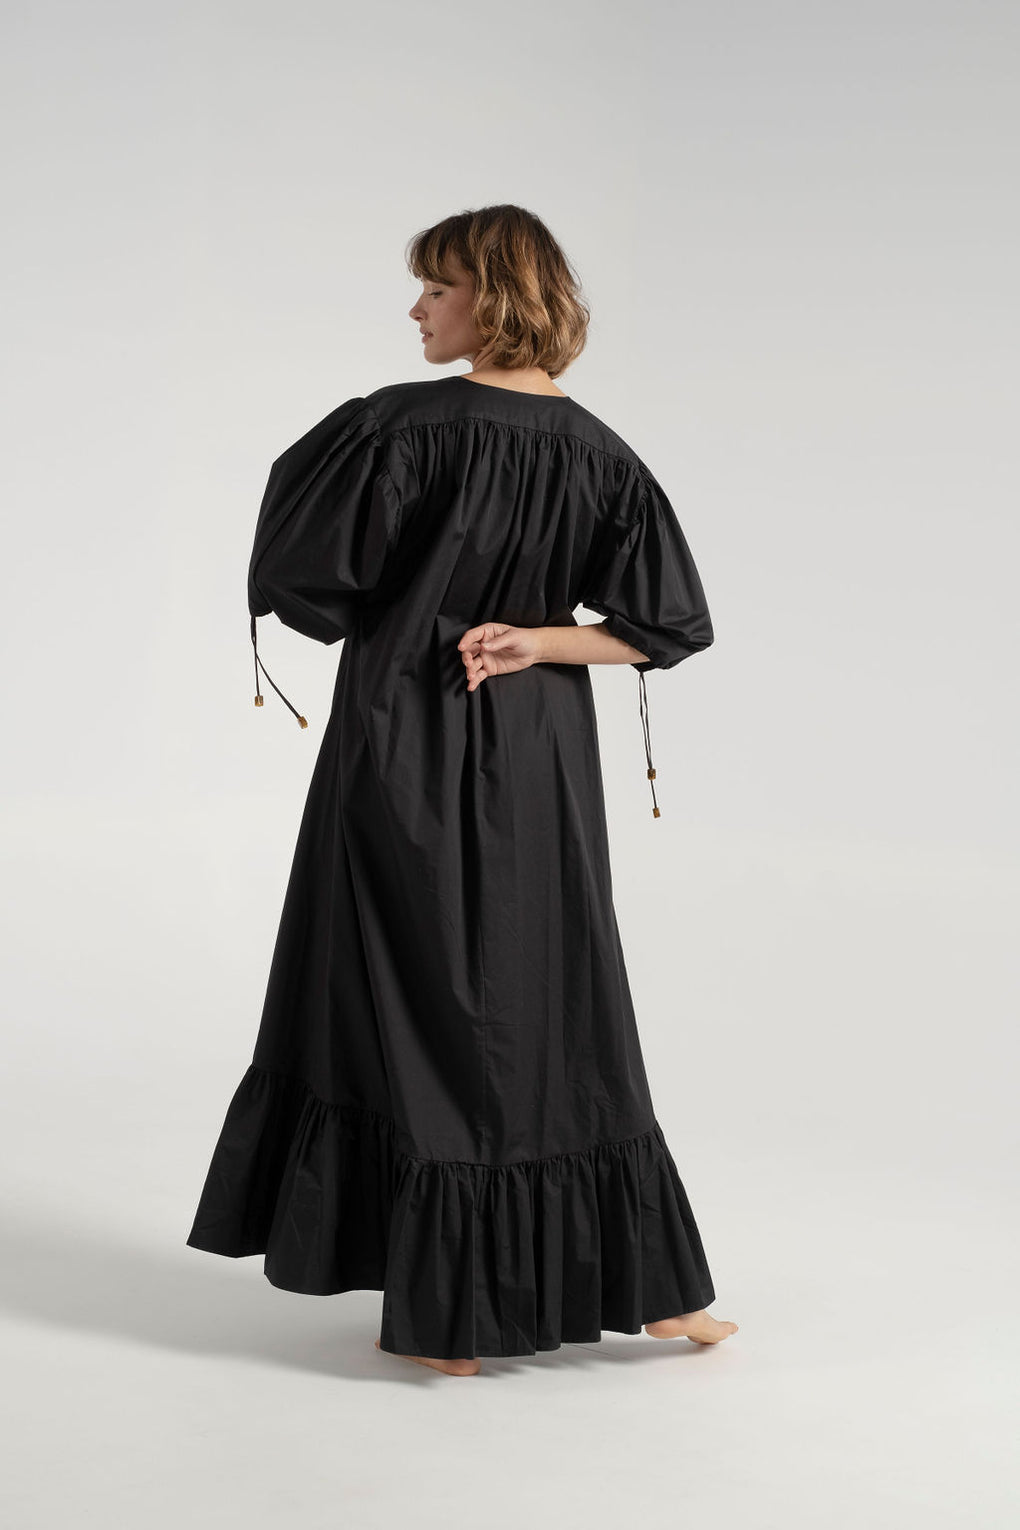 Rodebjer - Rodebjer Dakota dress - long black dress - structured black dress - Idun - St. Paul